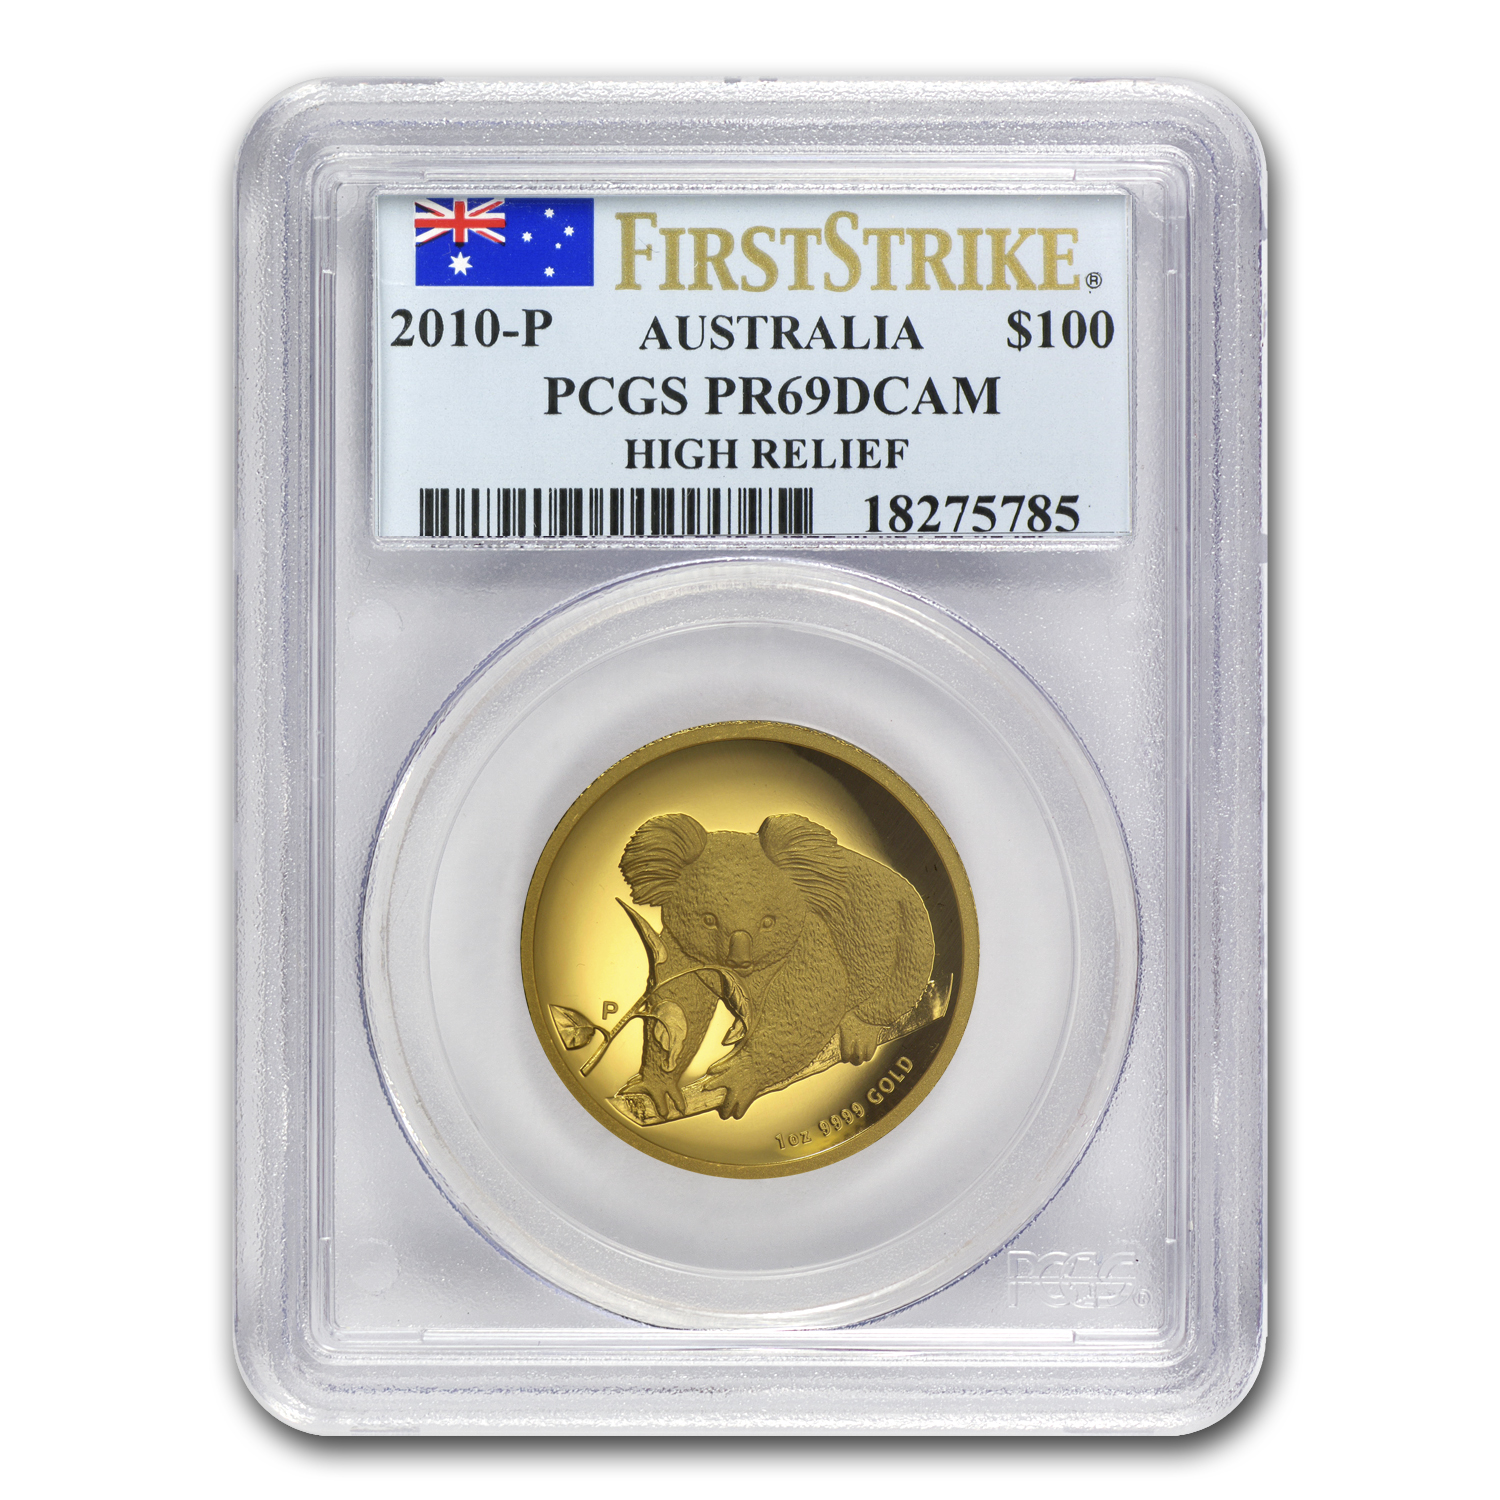 2010-P 1 oz Proof Gold High Relief Koala PR-69 PCGS First Strike